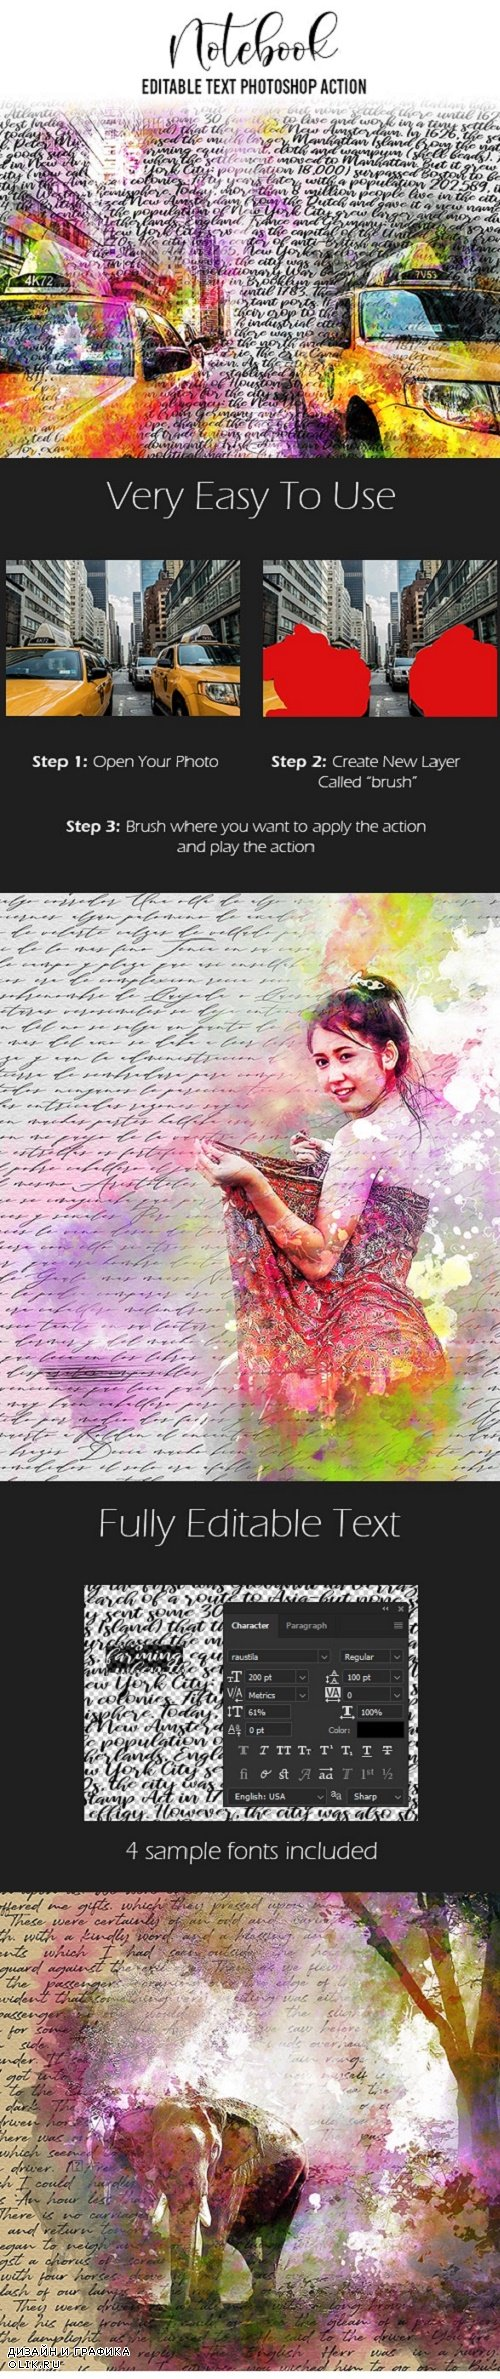 Notebook Photoshop Action 24181068